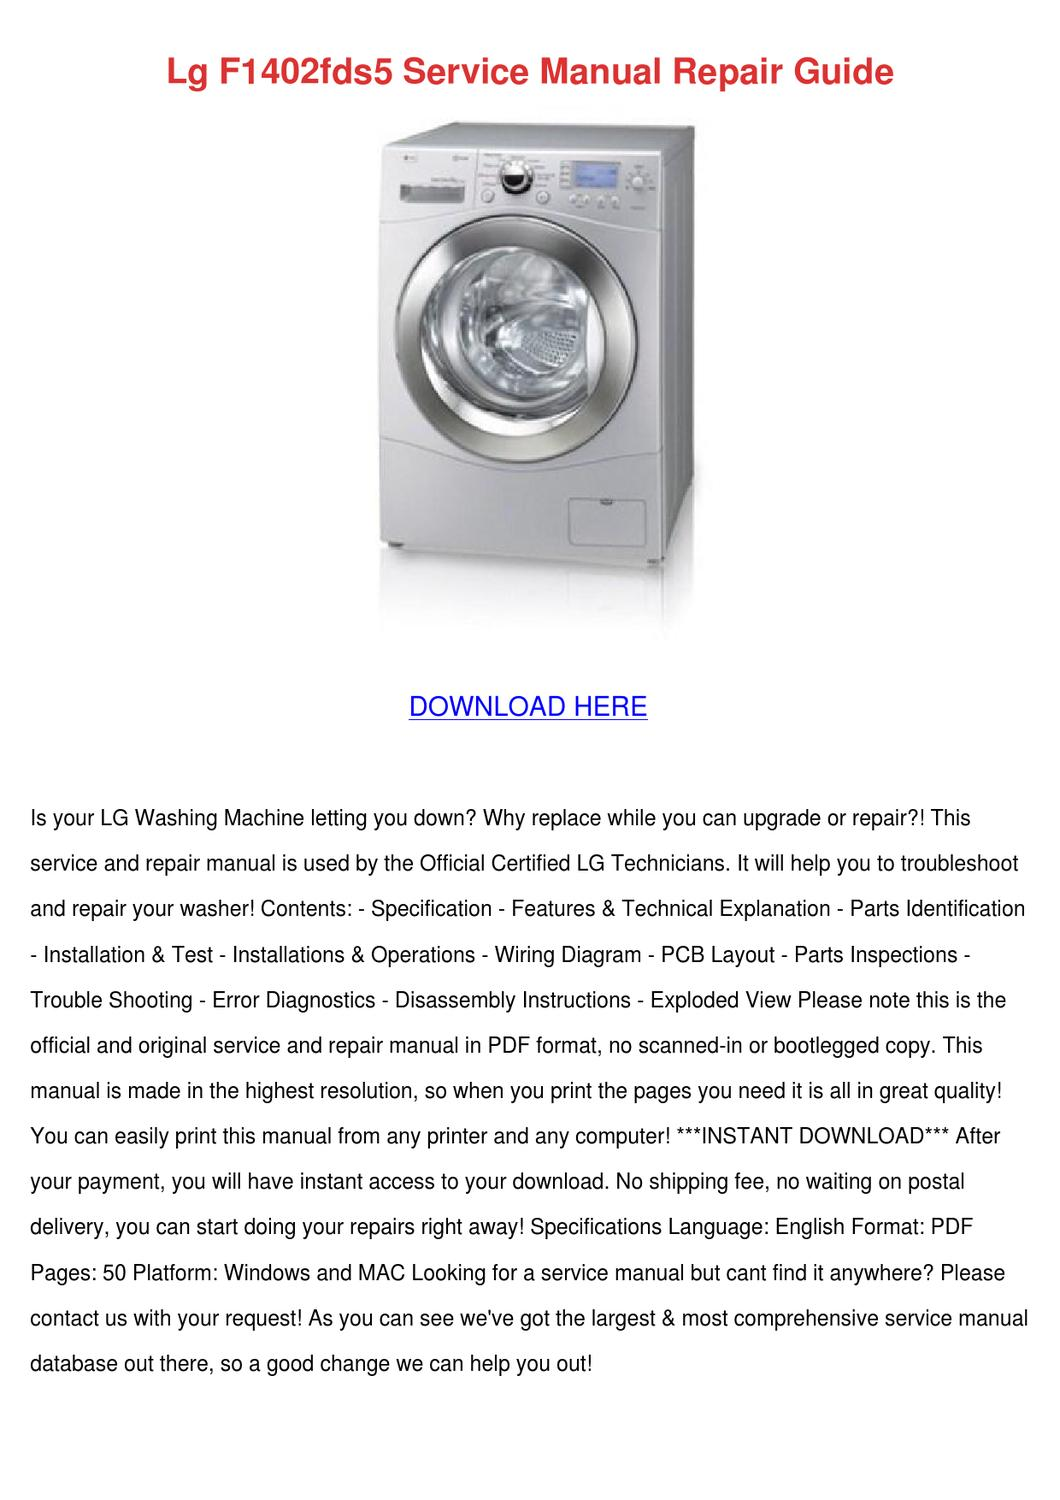 Lg F1402fds5 Service Manual Repair Guide by SylviaSledge - issuu